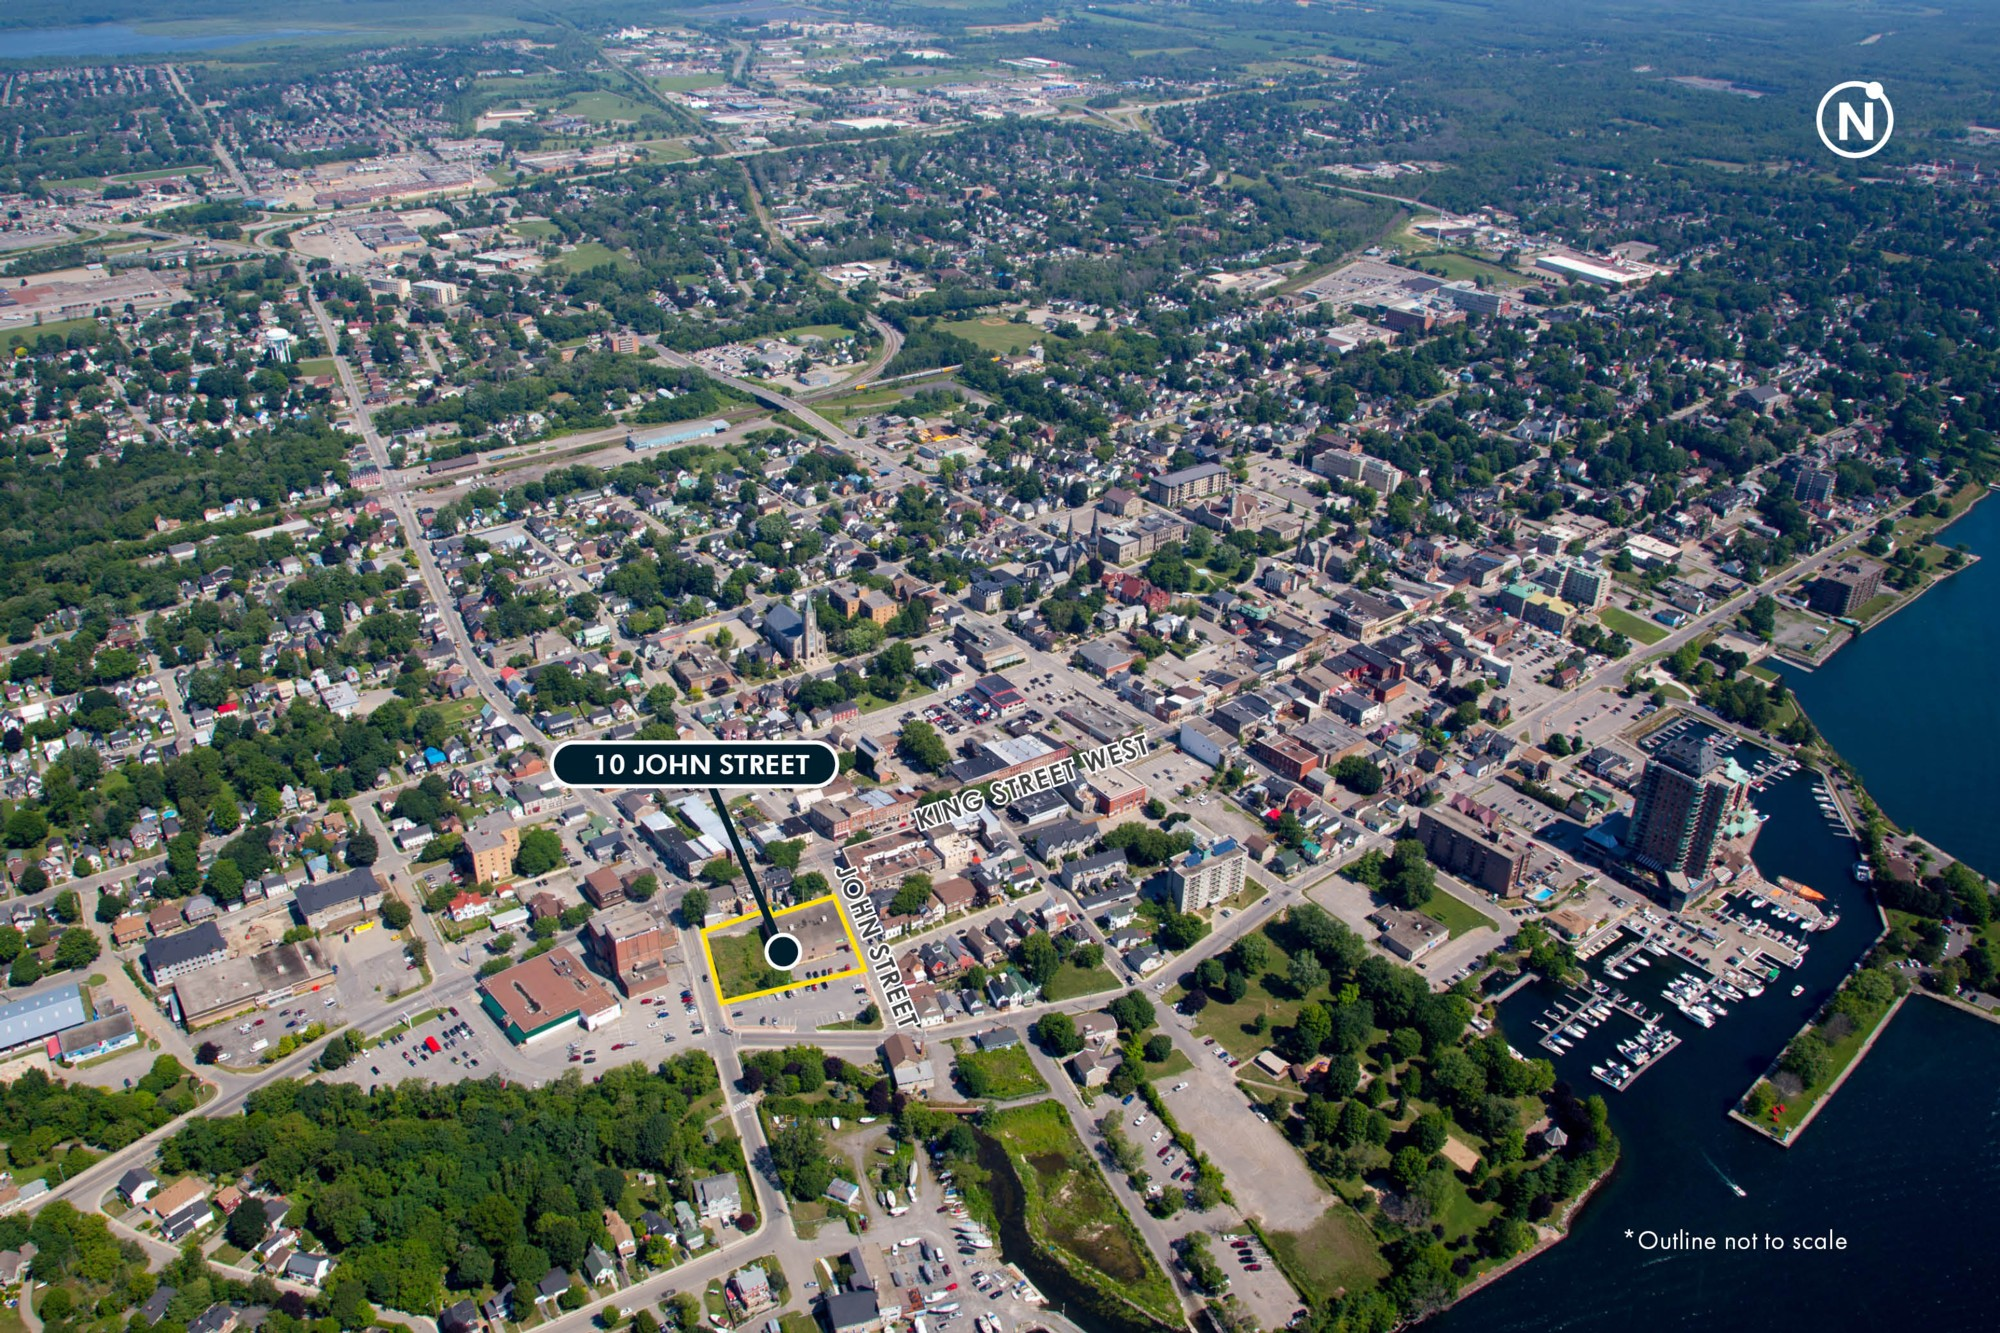 10 John Street aerial view with the river - Brockville, ON